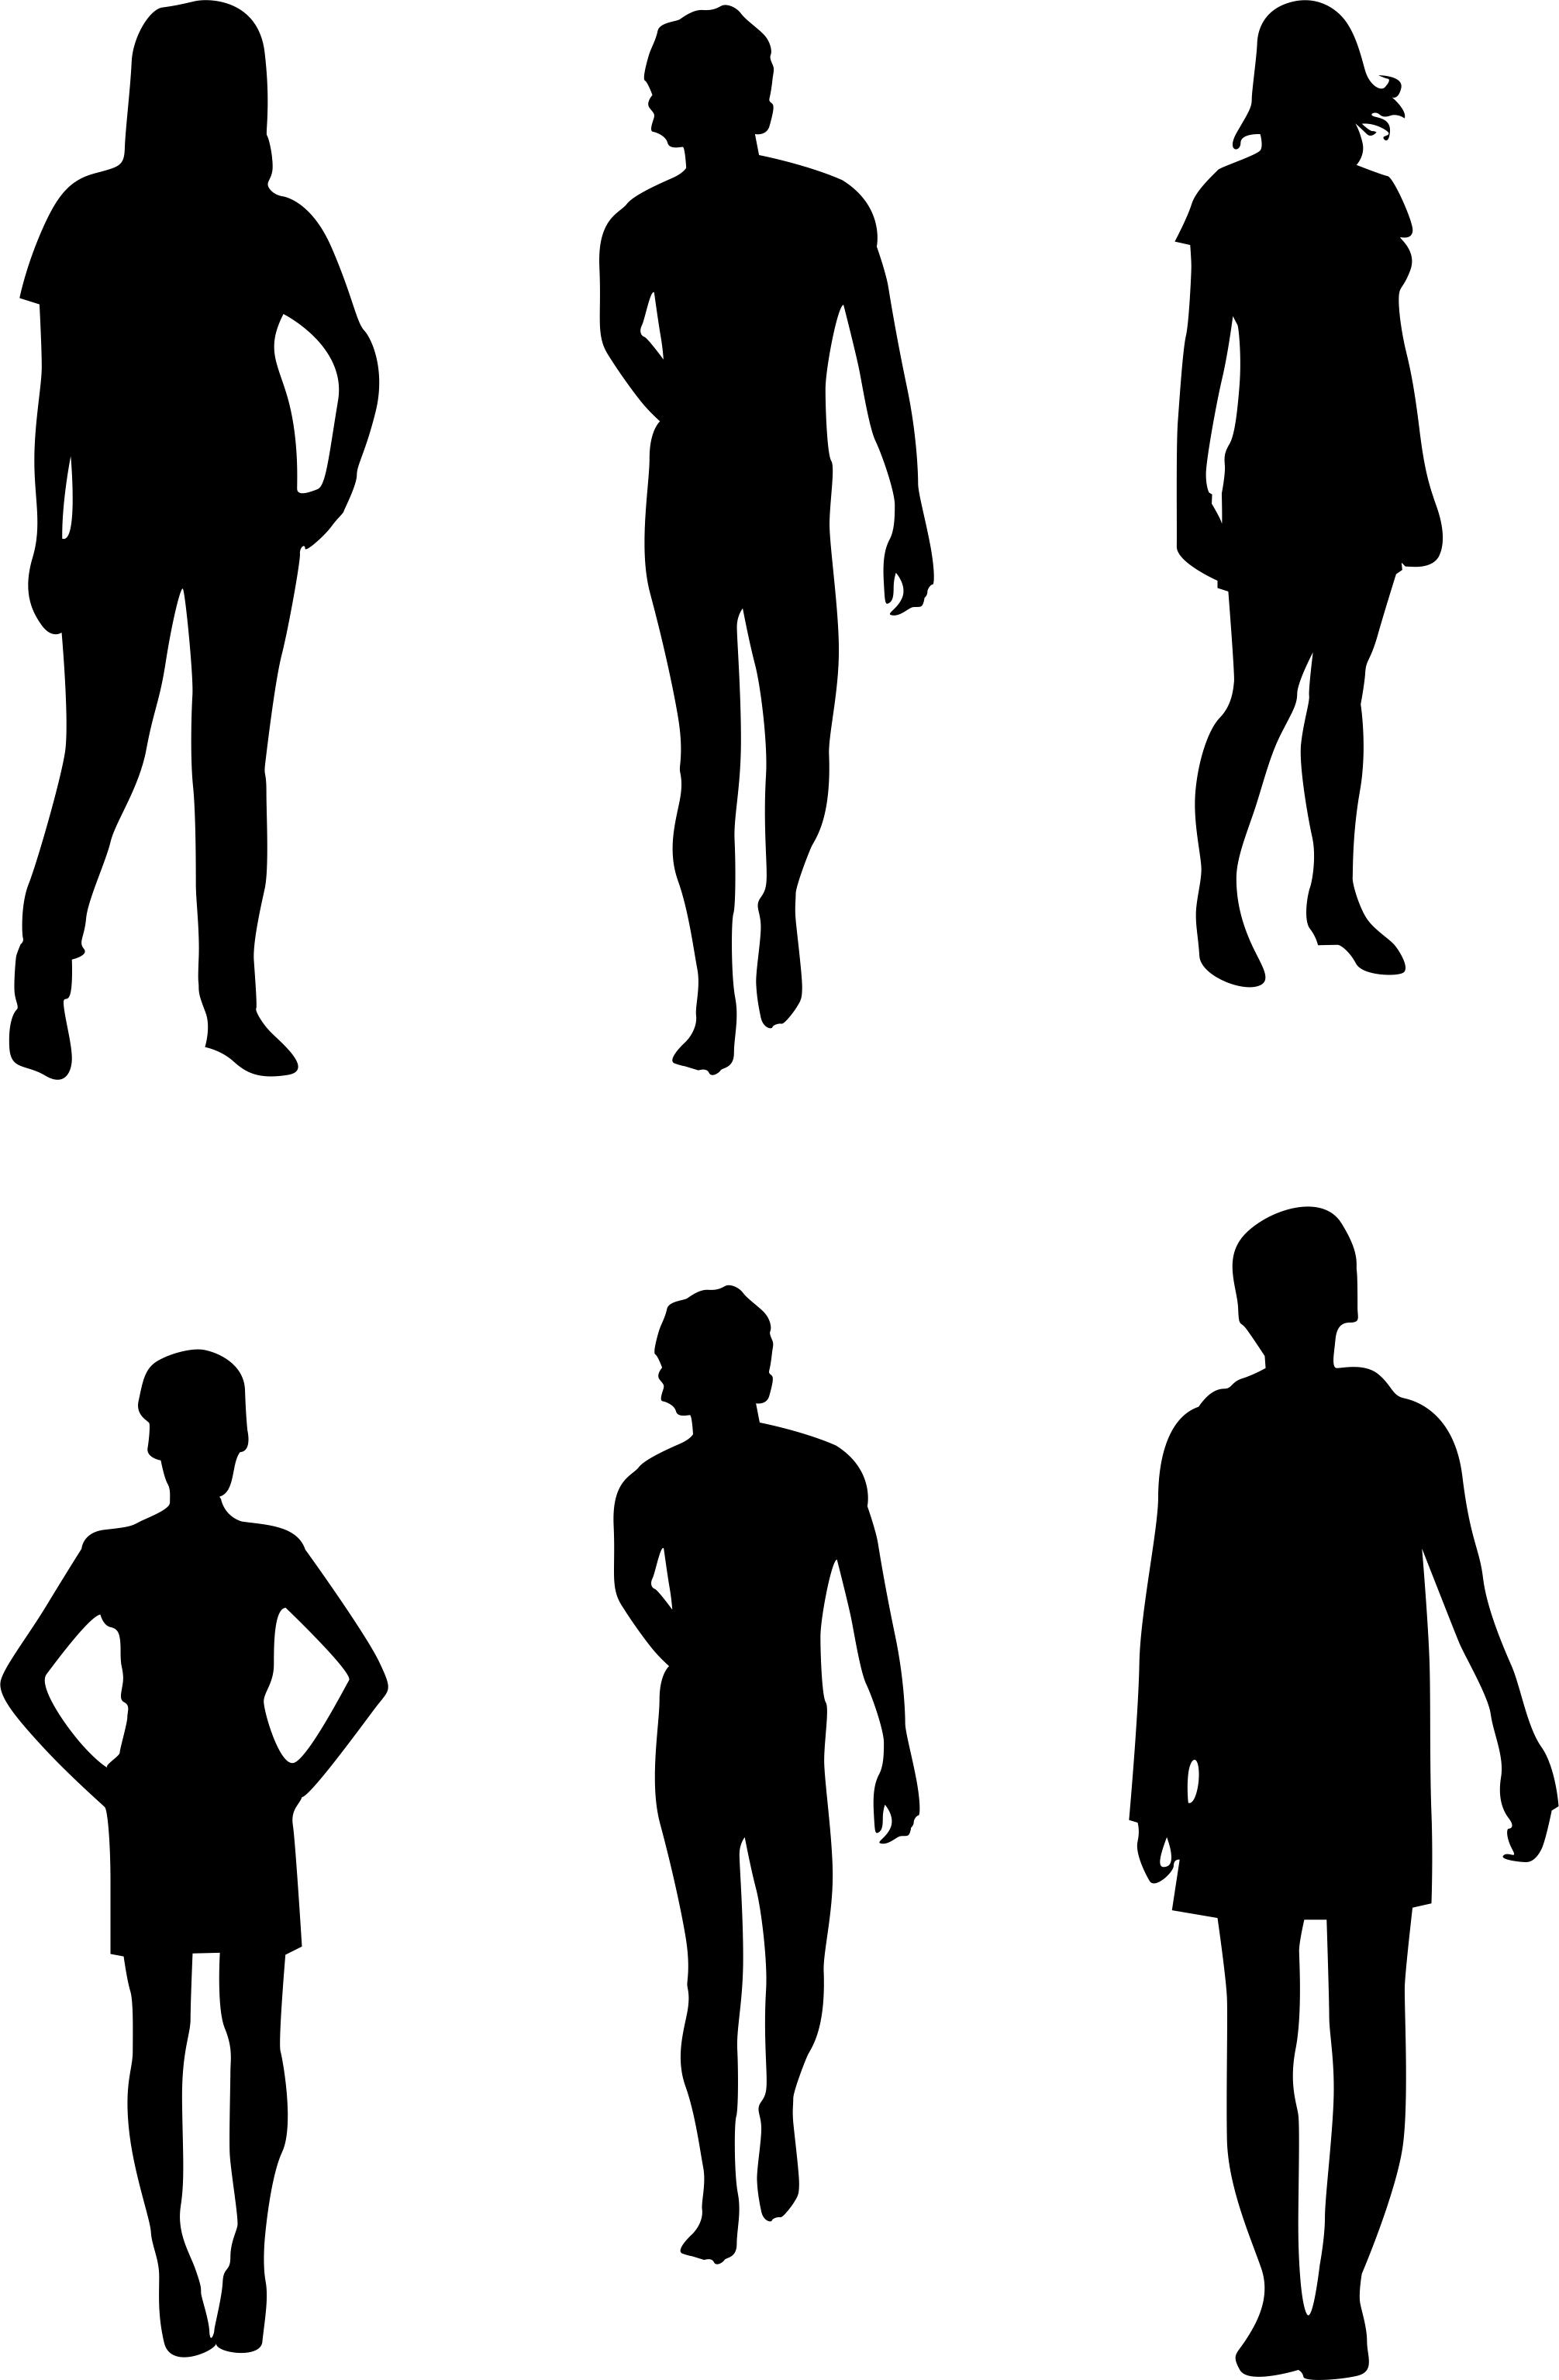 People Png Silhouette - ClipArt Best